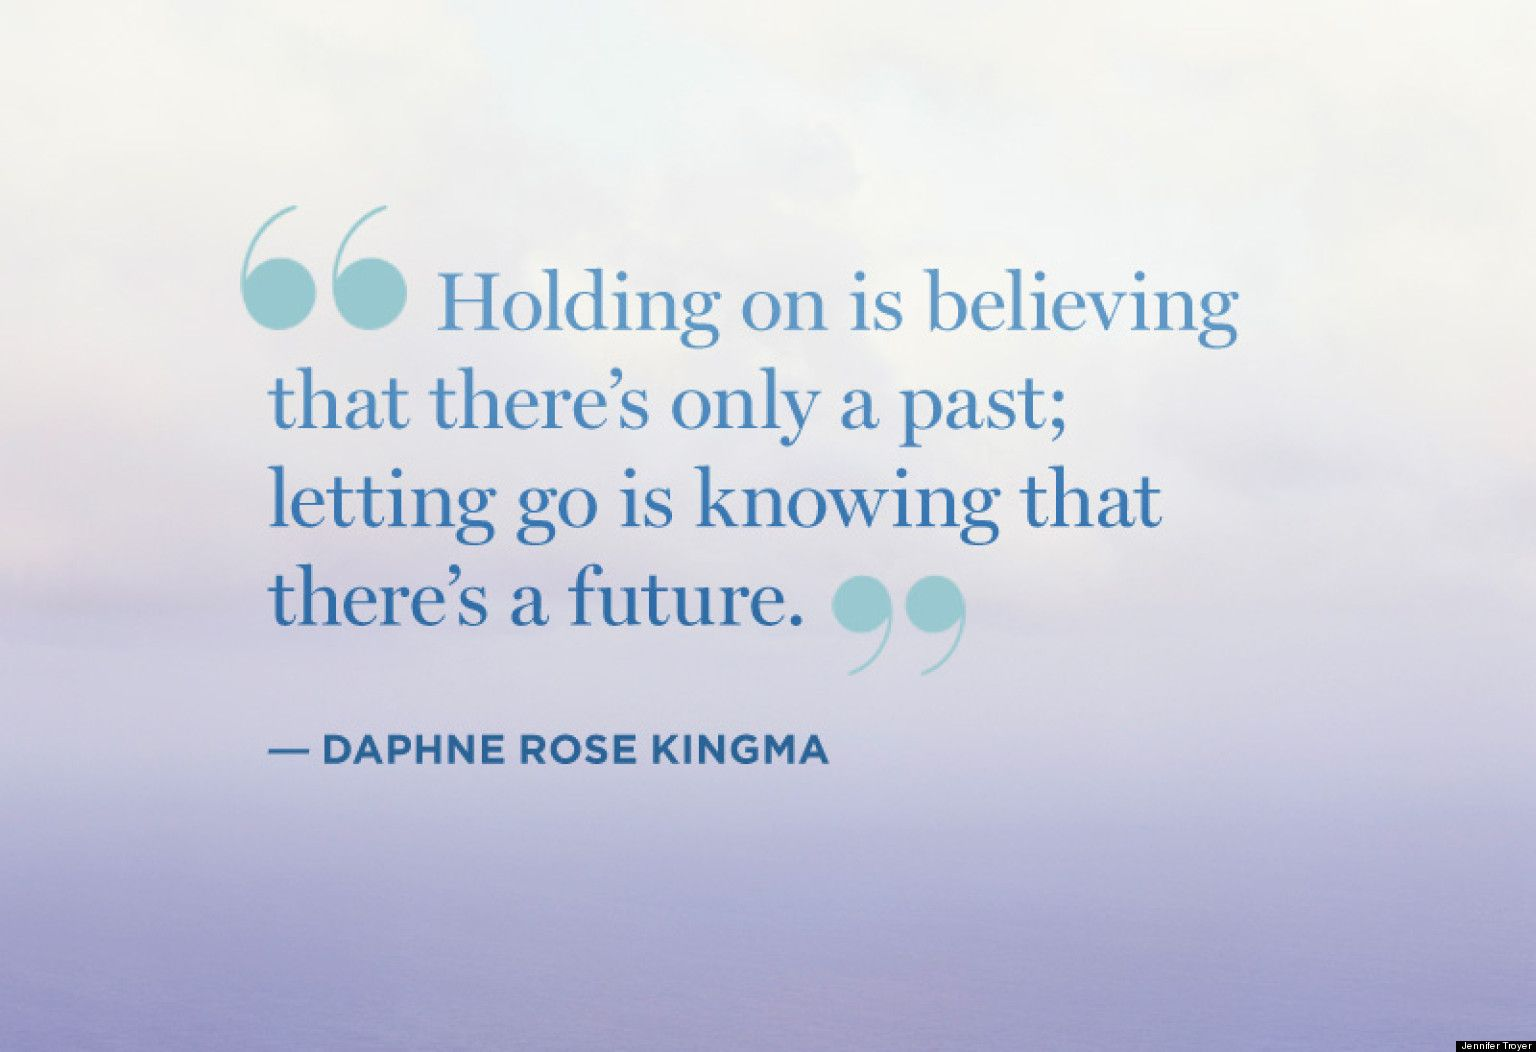 Daphne rose kingma quotes